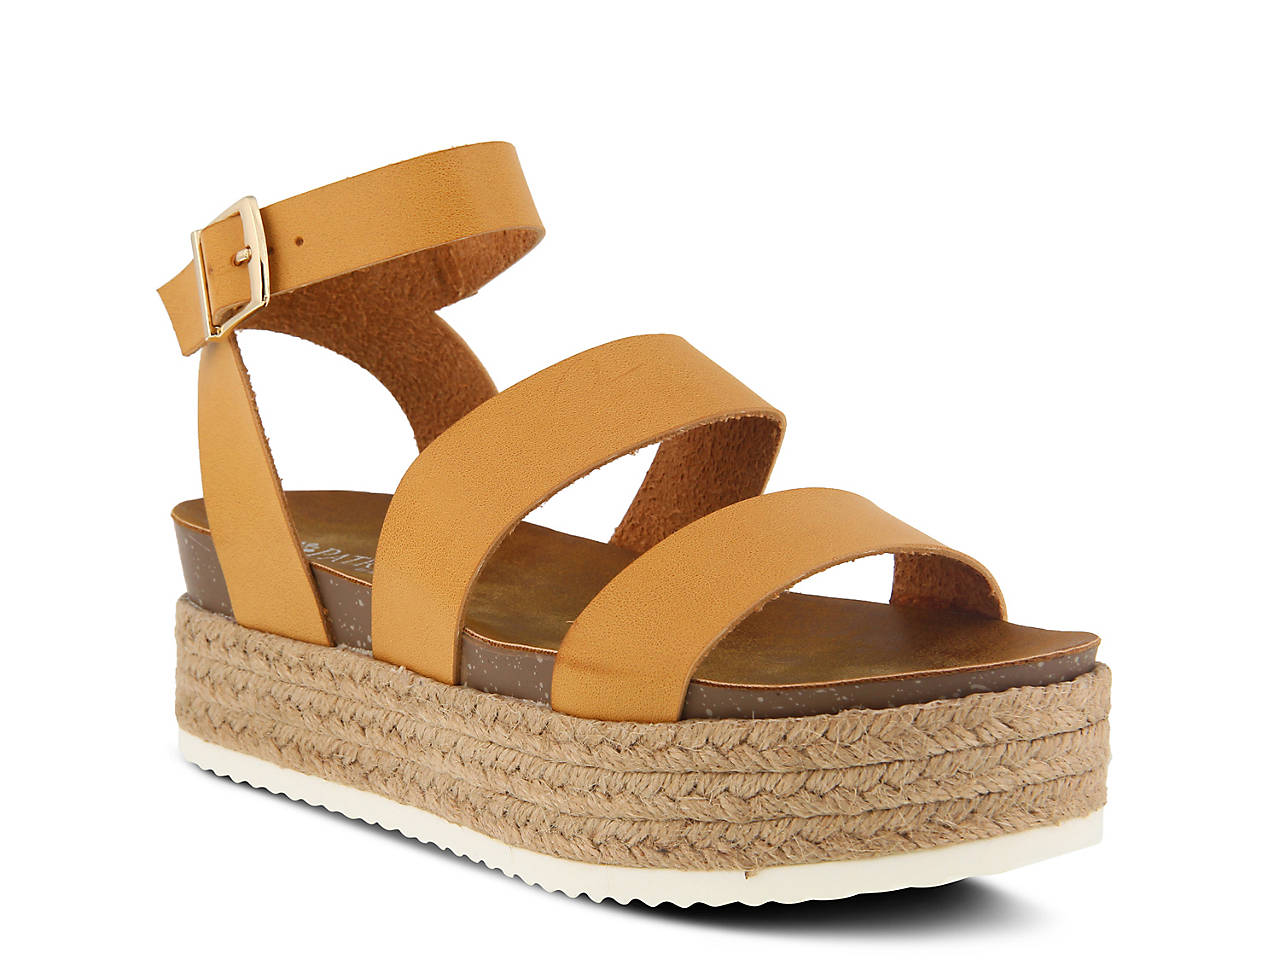 Tendencies Sandals Footbed 2 Strap Brown 41 Patrizia By Spring Step Larissa Espadrille Platform Sandal Womens